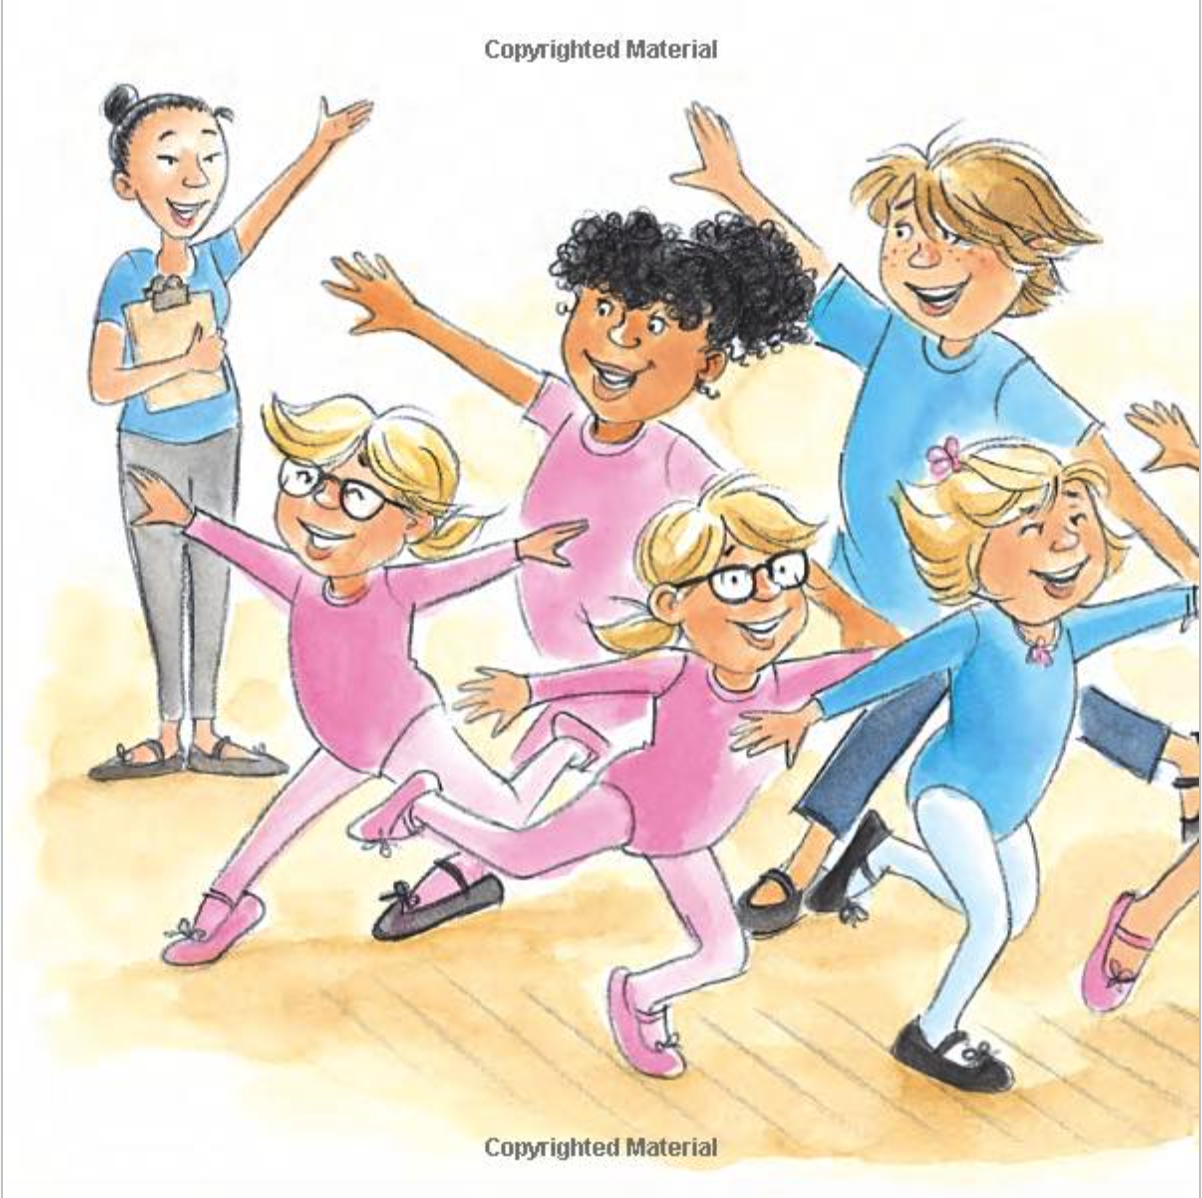 New dancers will love this fun story!